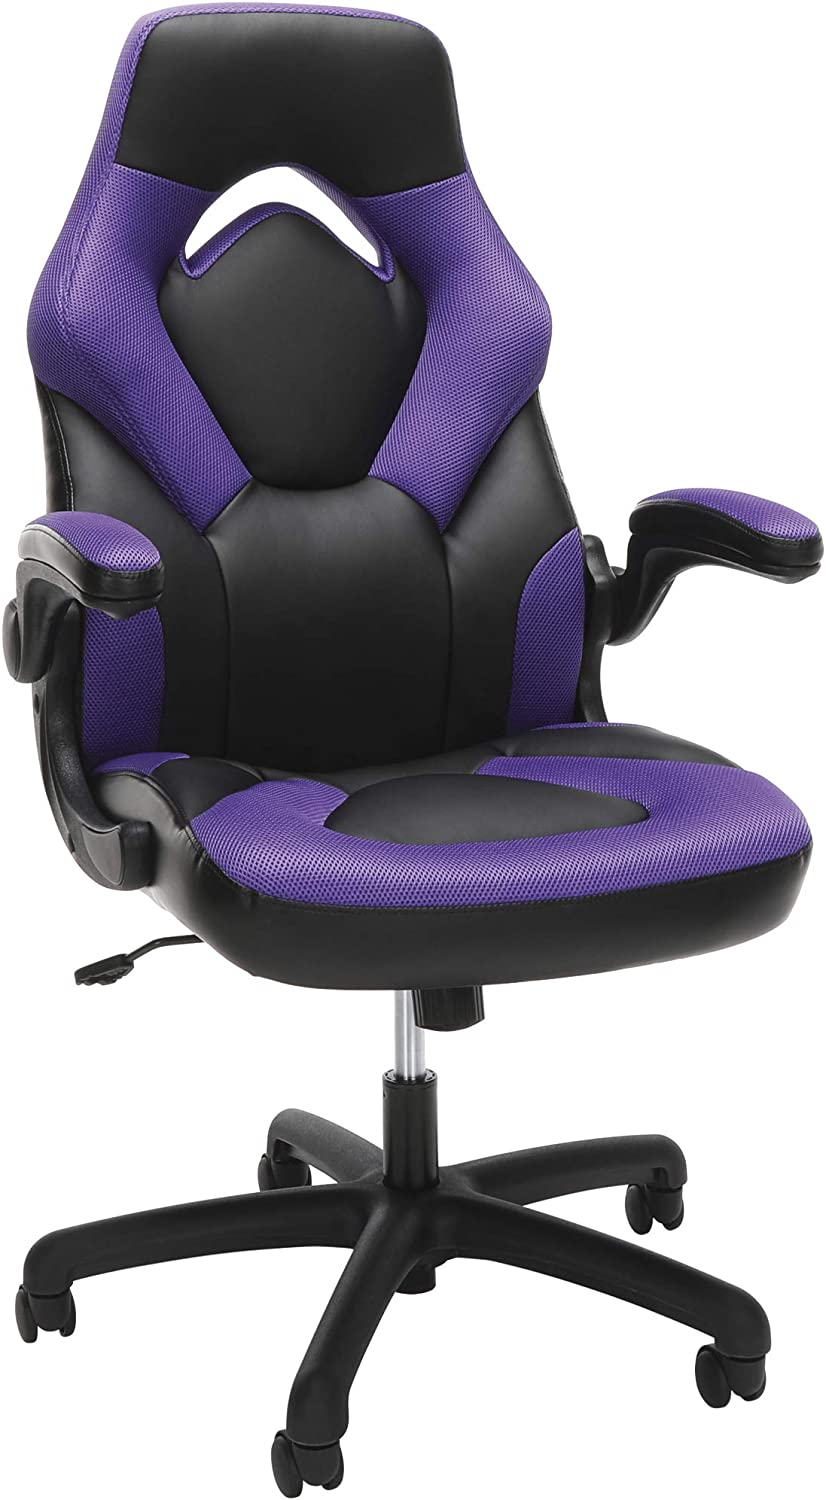 OFM Racing Style Bonded Leather Gaming Chair, in Purple (ESS-3085-PUR)